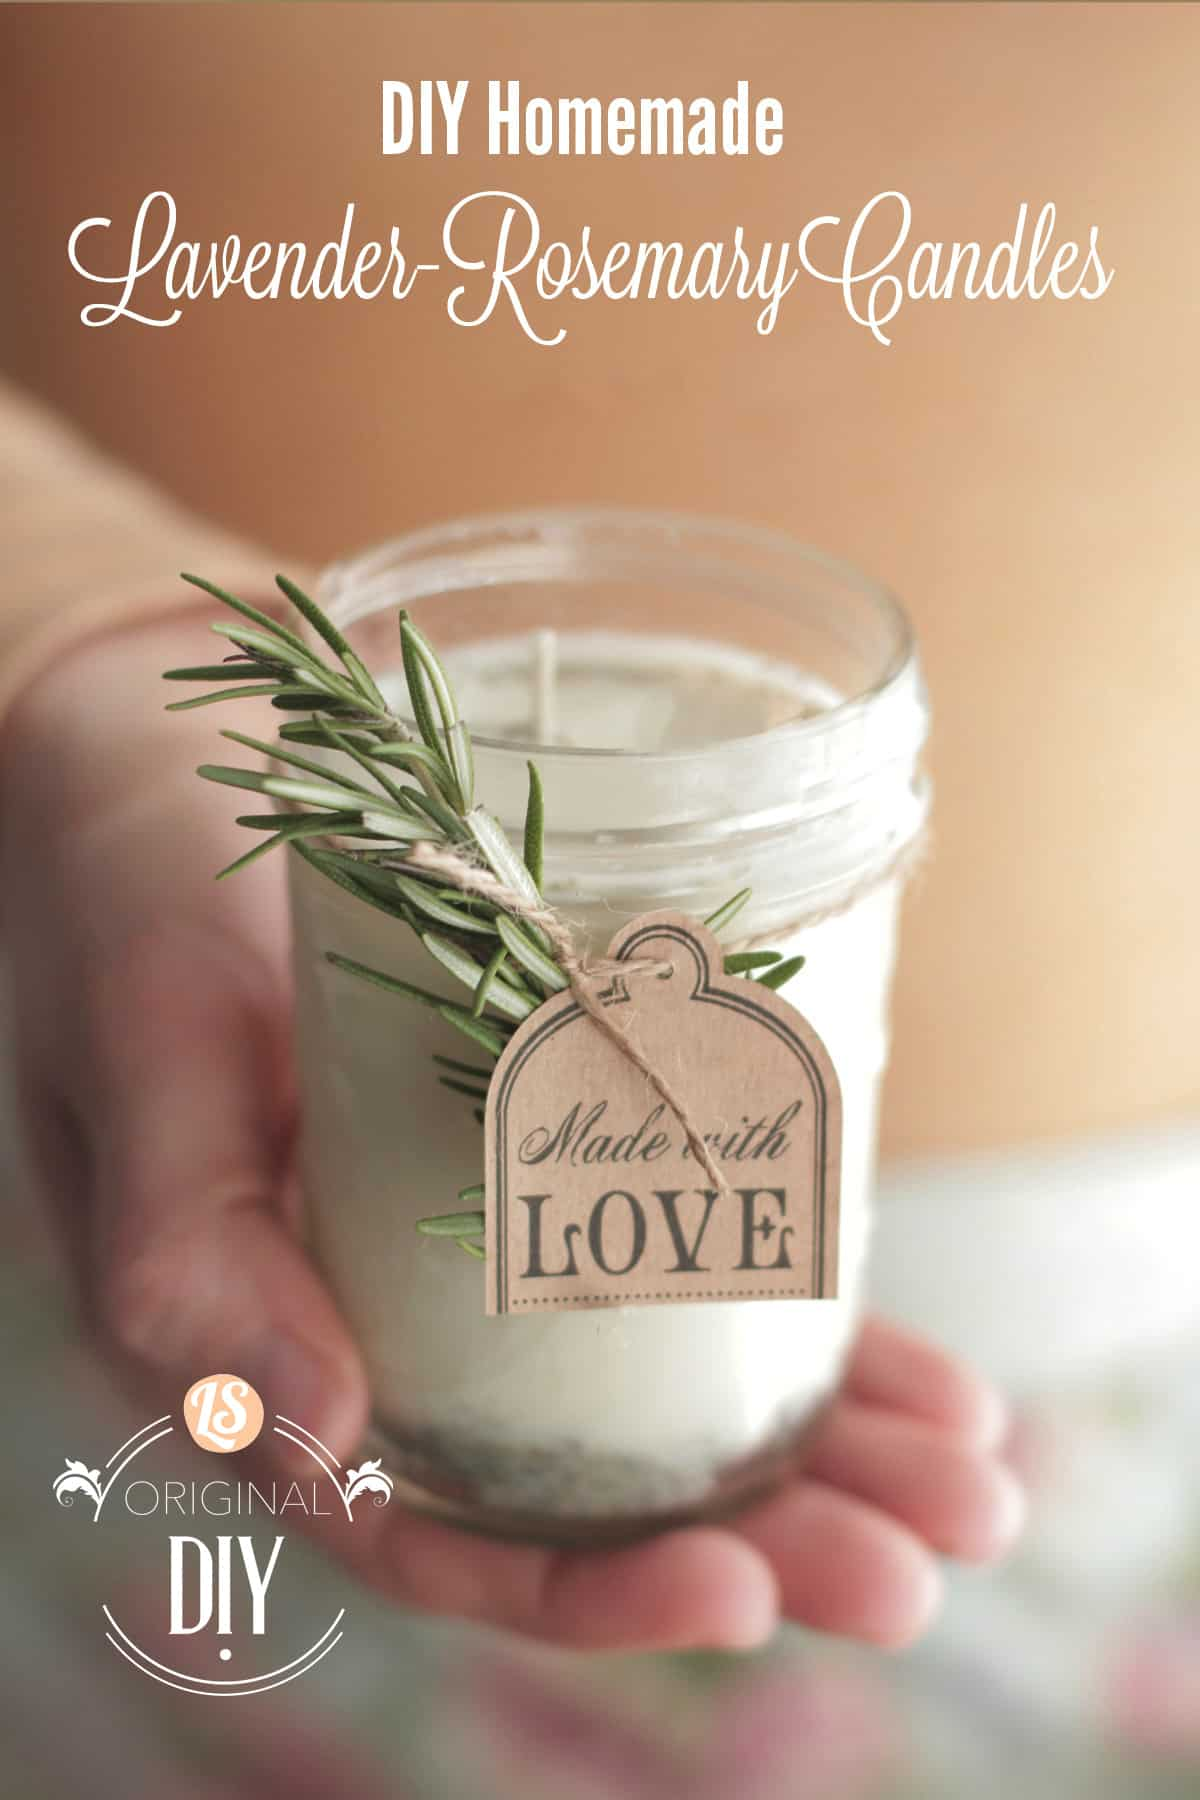 Homeamde lavender rosemary candles